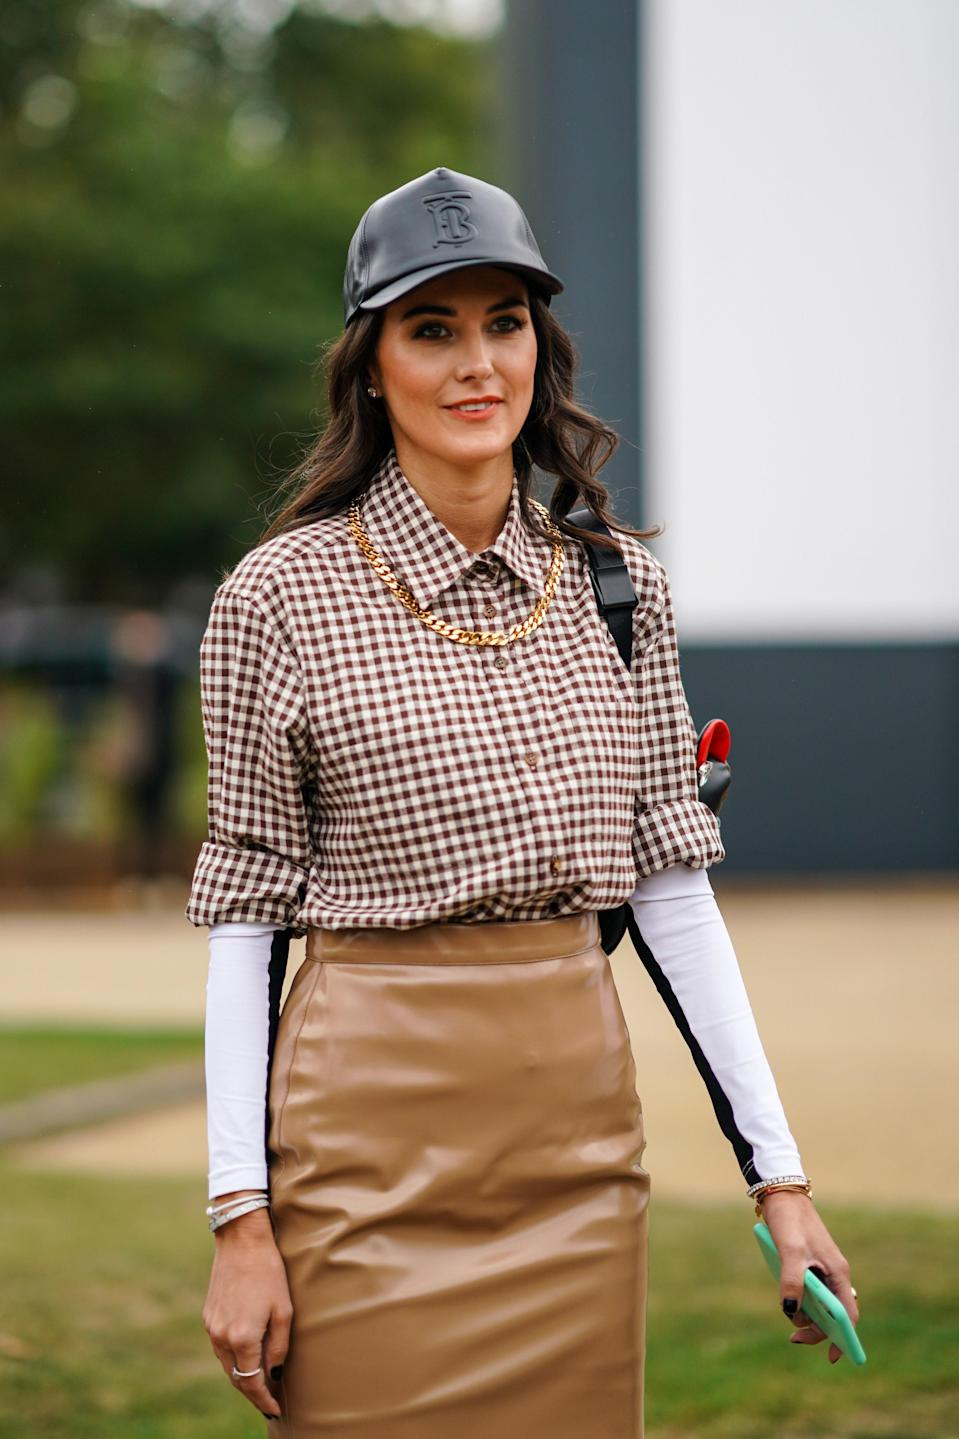 Leather elevates a ball cap while keeping the cool factor. And those loose curls? Gorgeous.